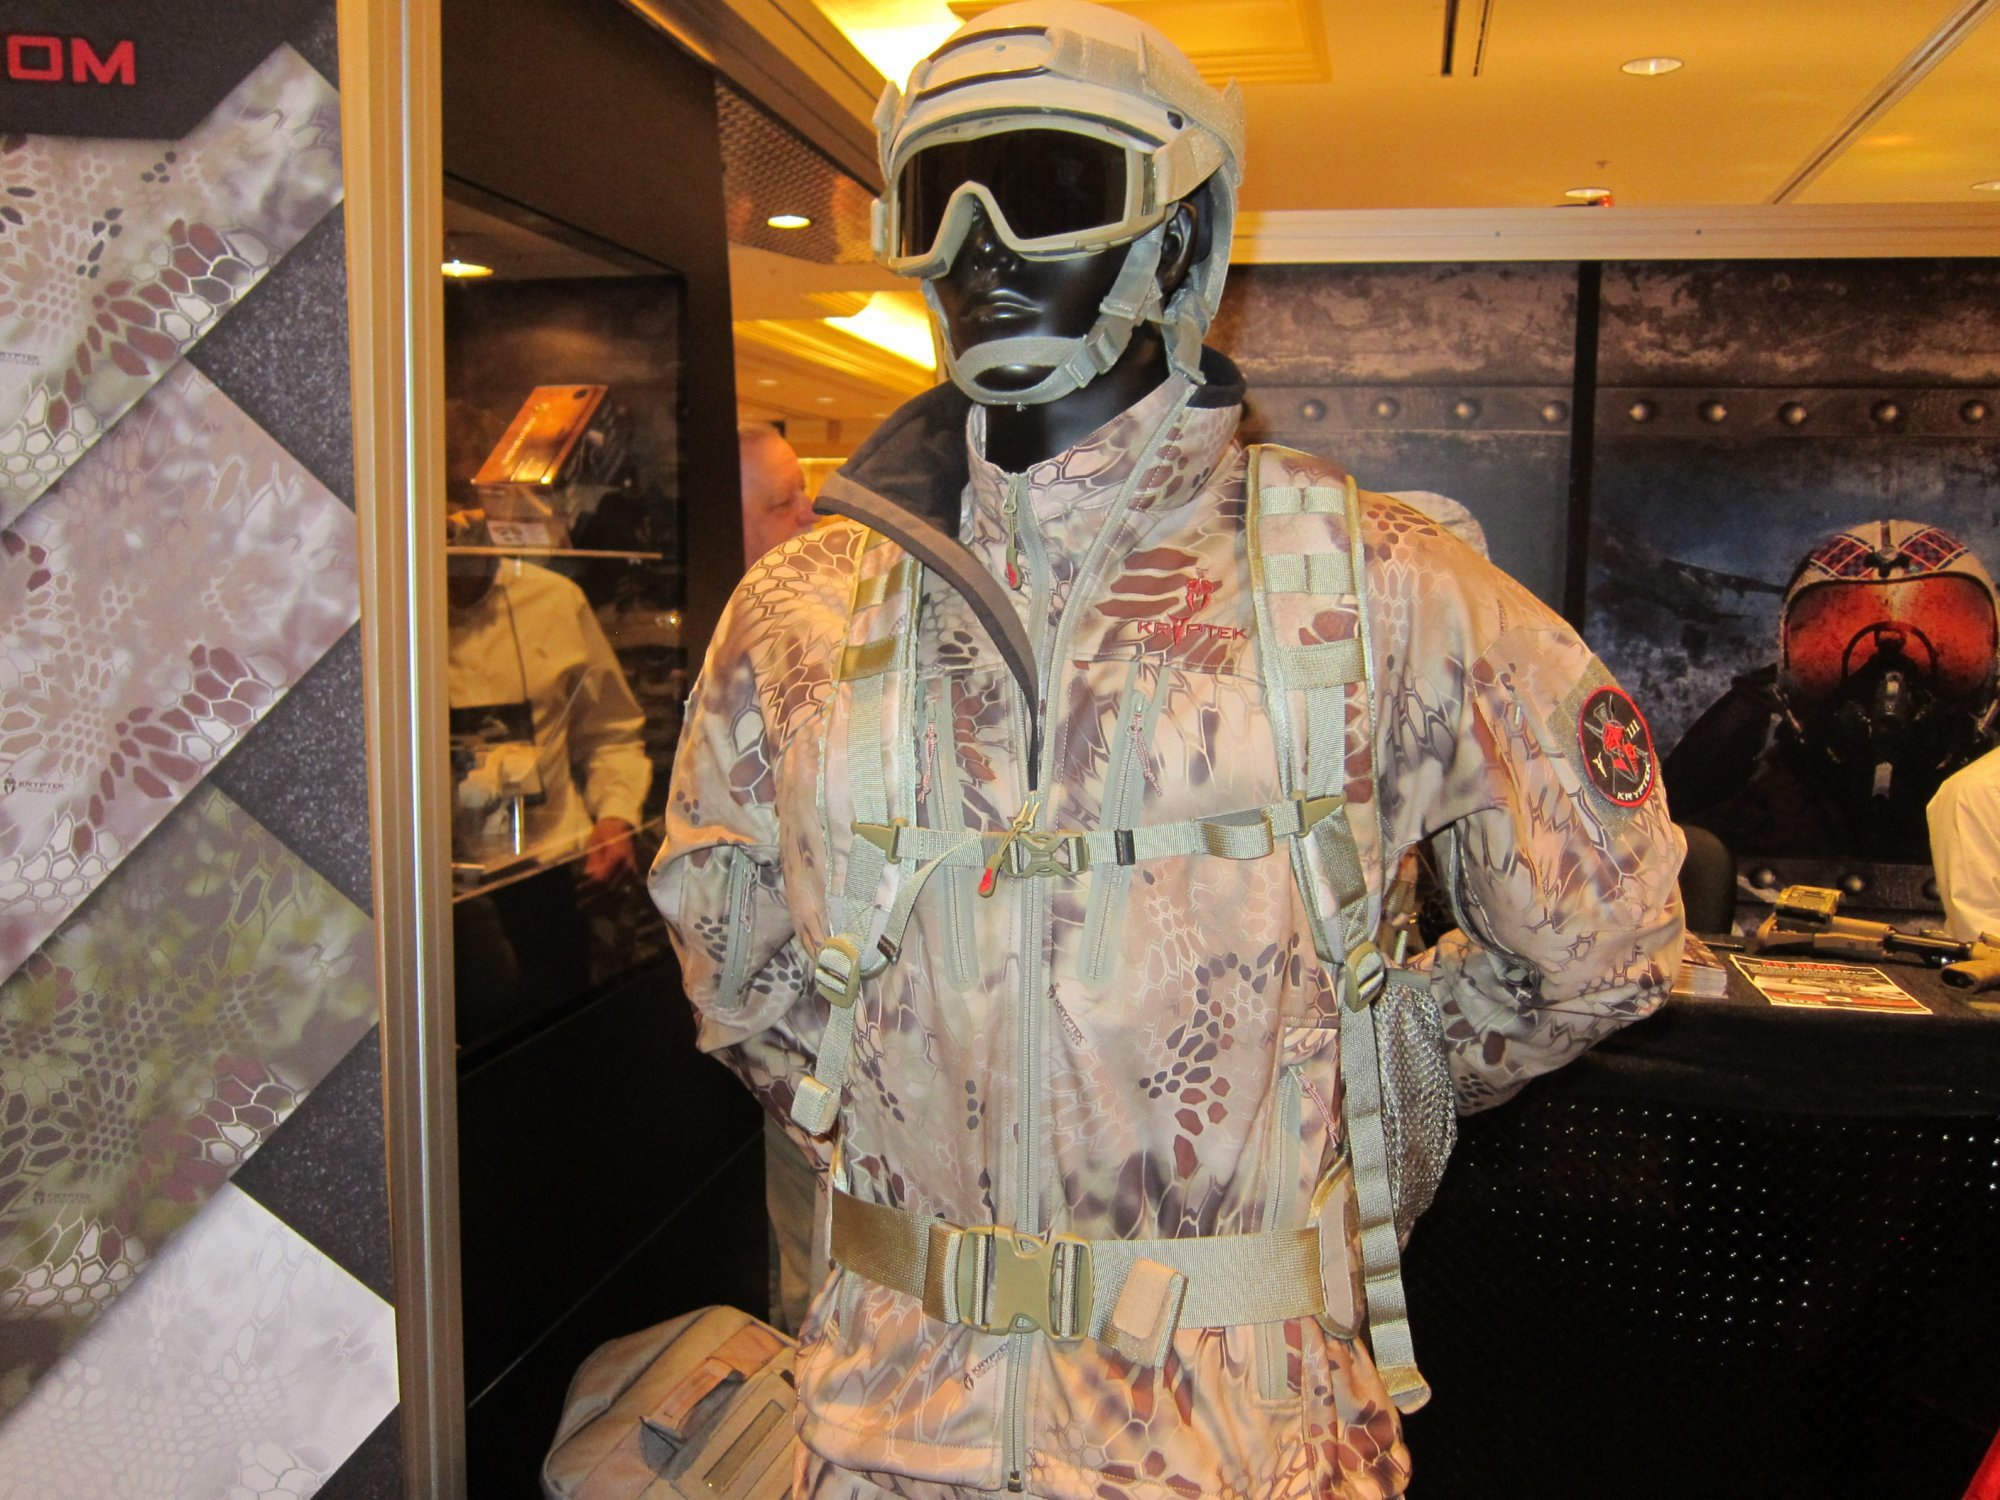 KRYPTEK LEAF Combat Camouflage Source One Distributing SOD Booth SHOT Show 2012 1 18 2012 DefenseReview.com DR 2 Kryptek LEAF/Camo Technologies 3 Dimensional (3 D)/Multi Directional Biomimetic Military Combat Camouflage (Camo) Patterns at SHOT Show 2012: Is the Armys Future Soldier Going Reptilian? (Video!)